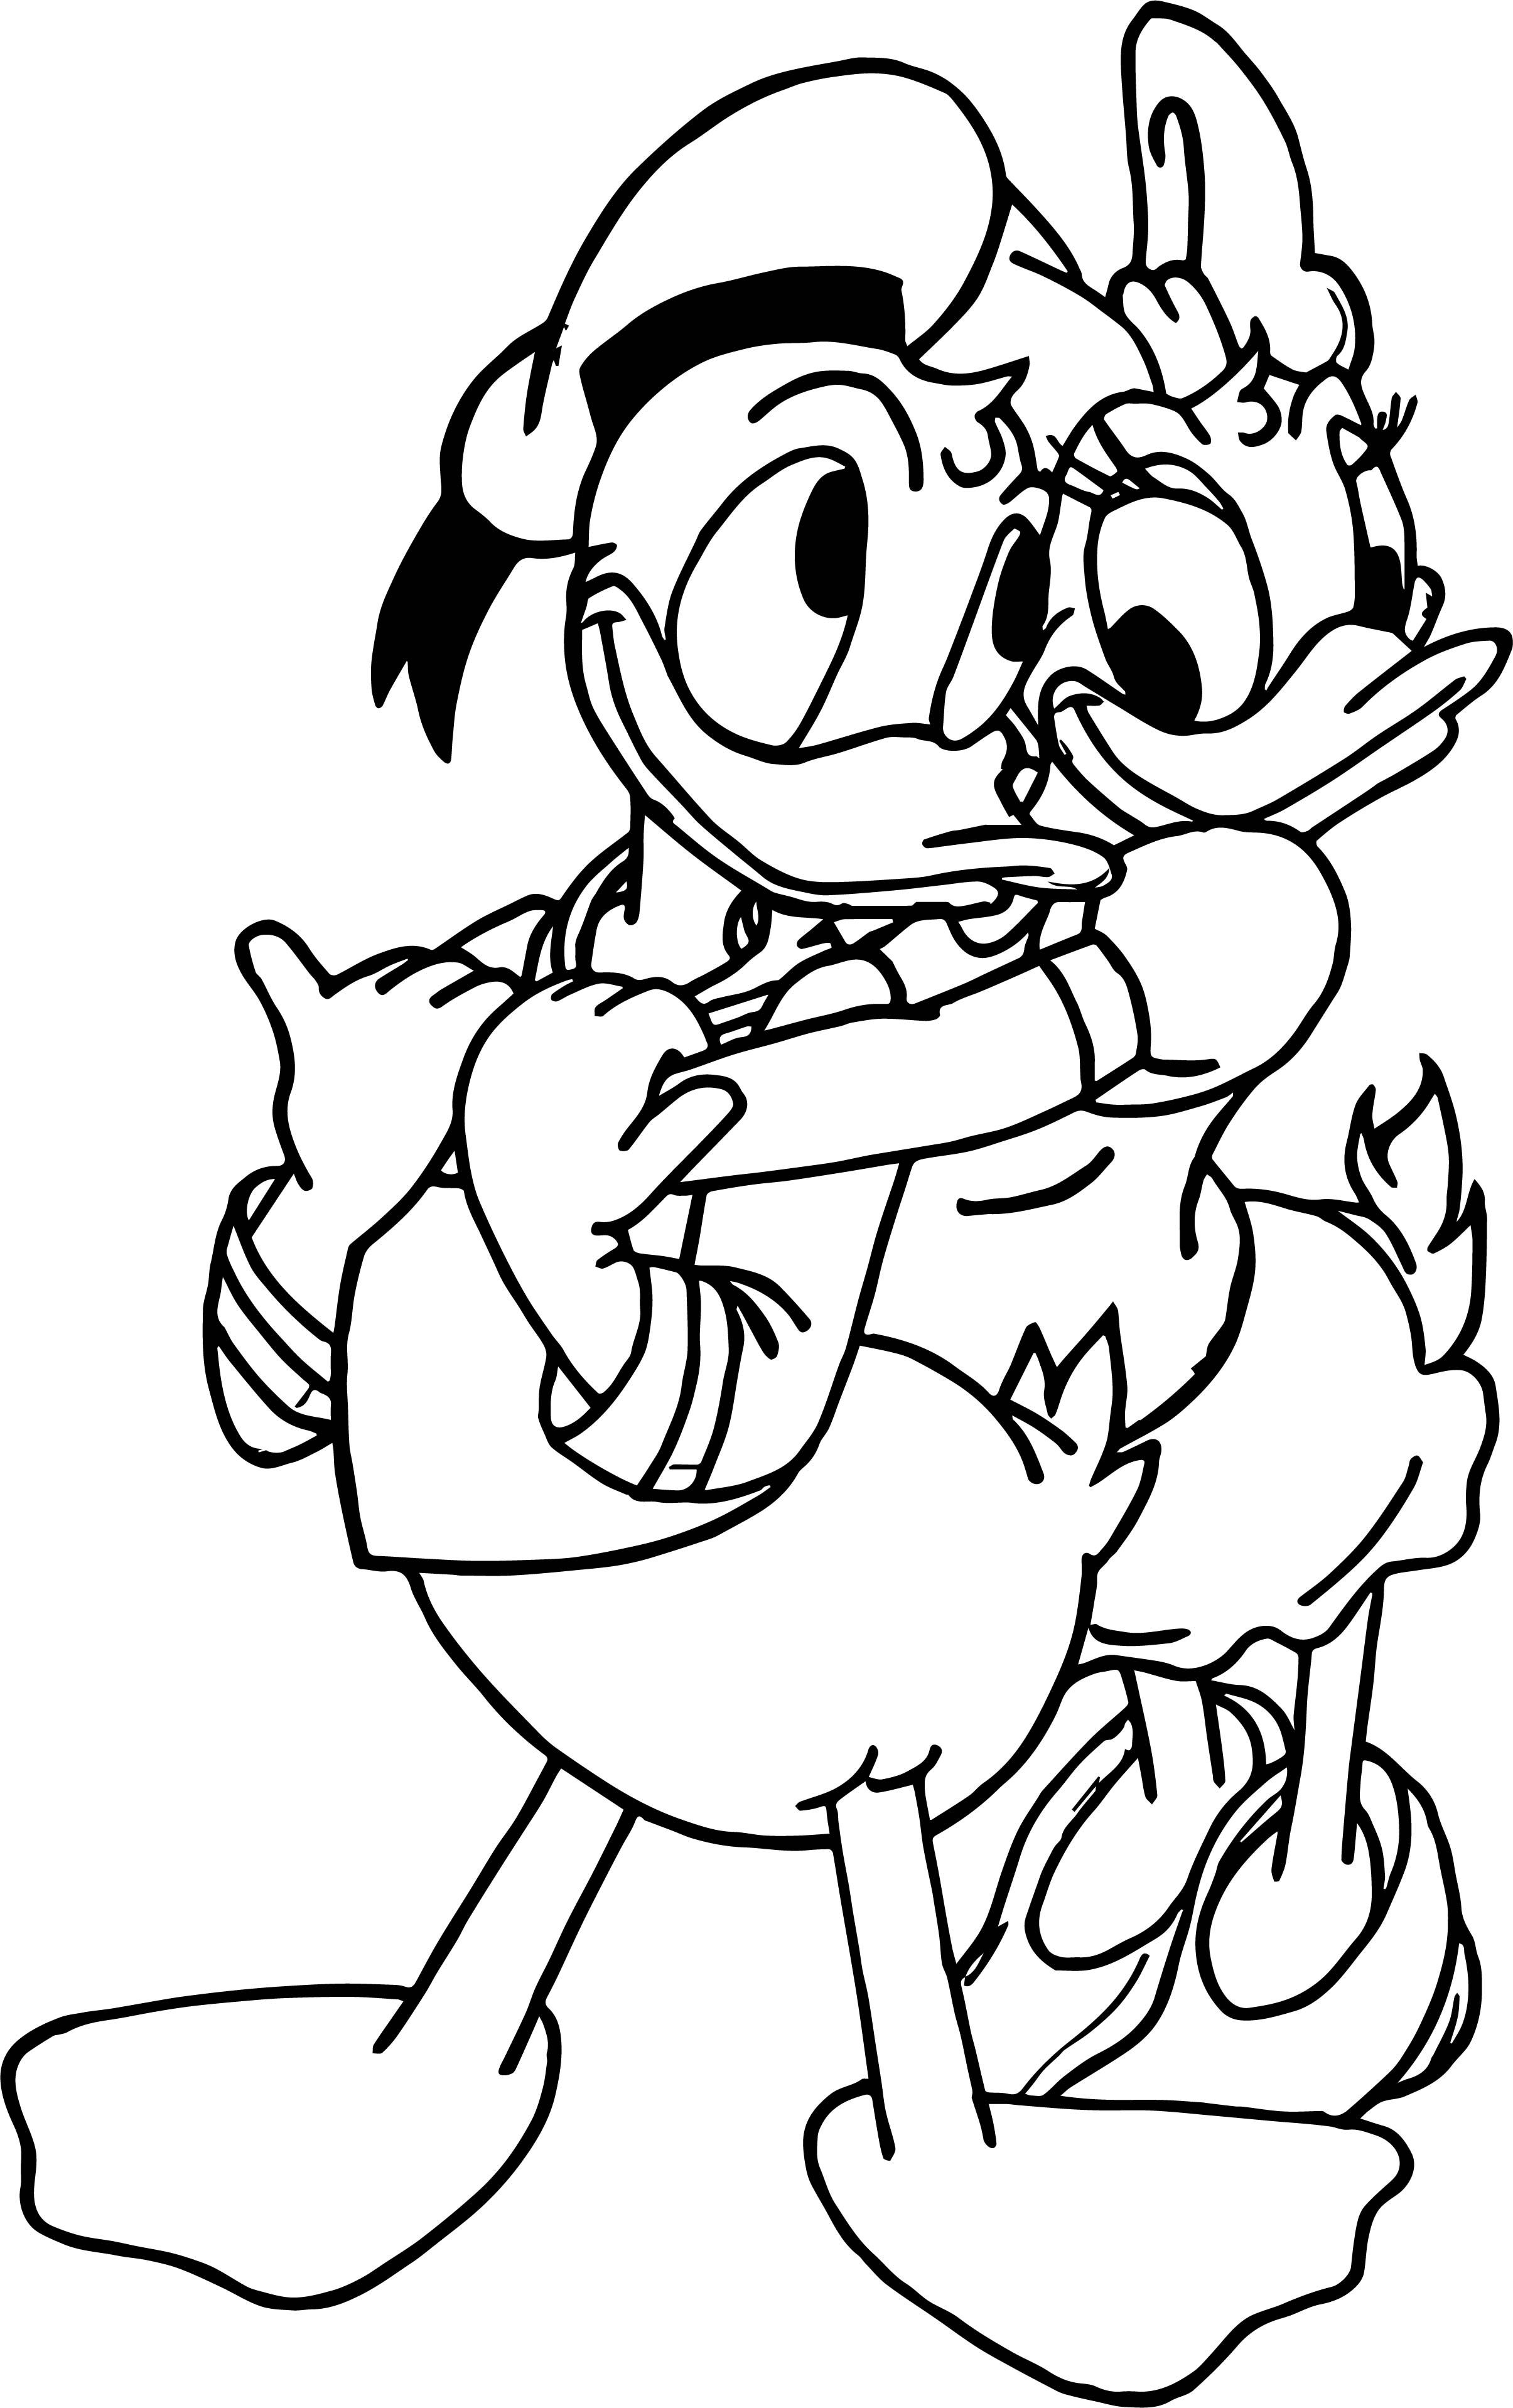 Cool Disney Donald Duck And Daisy Duck Murals For Baby Bedroom Decoration Ideas Coloring Page Cartoon Coloring Pages Donald And Daisy Duck Coloring Books